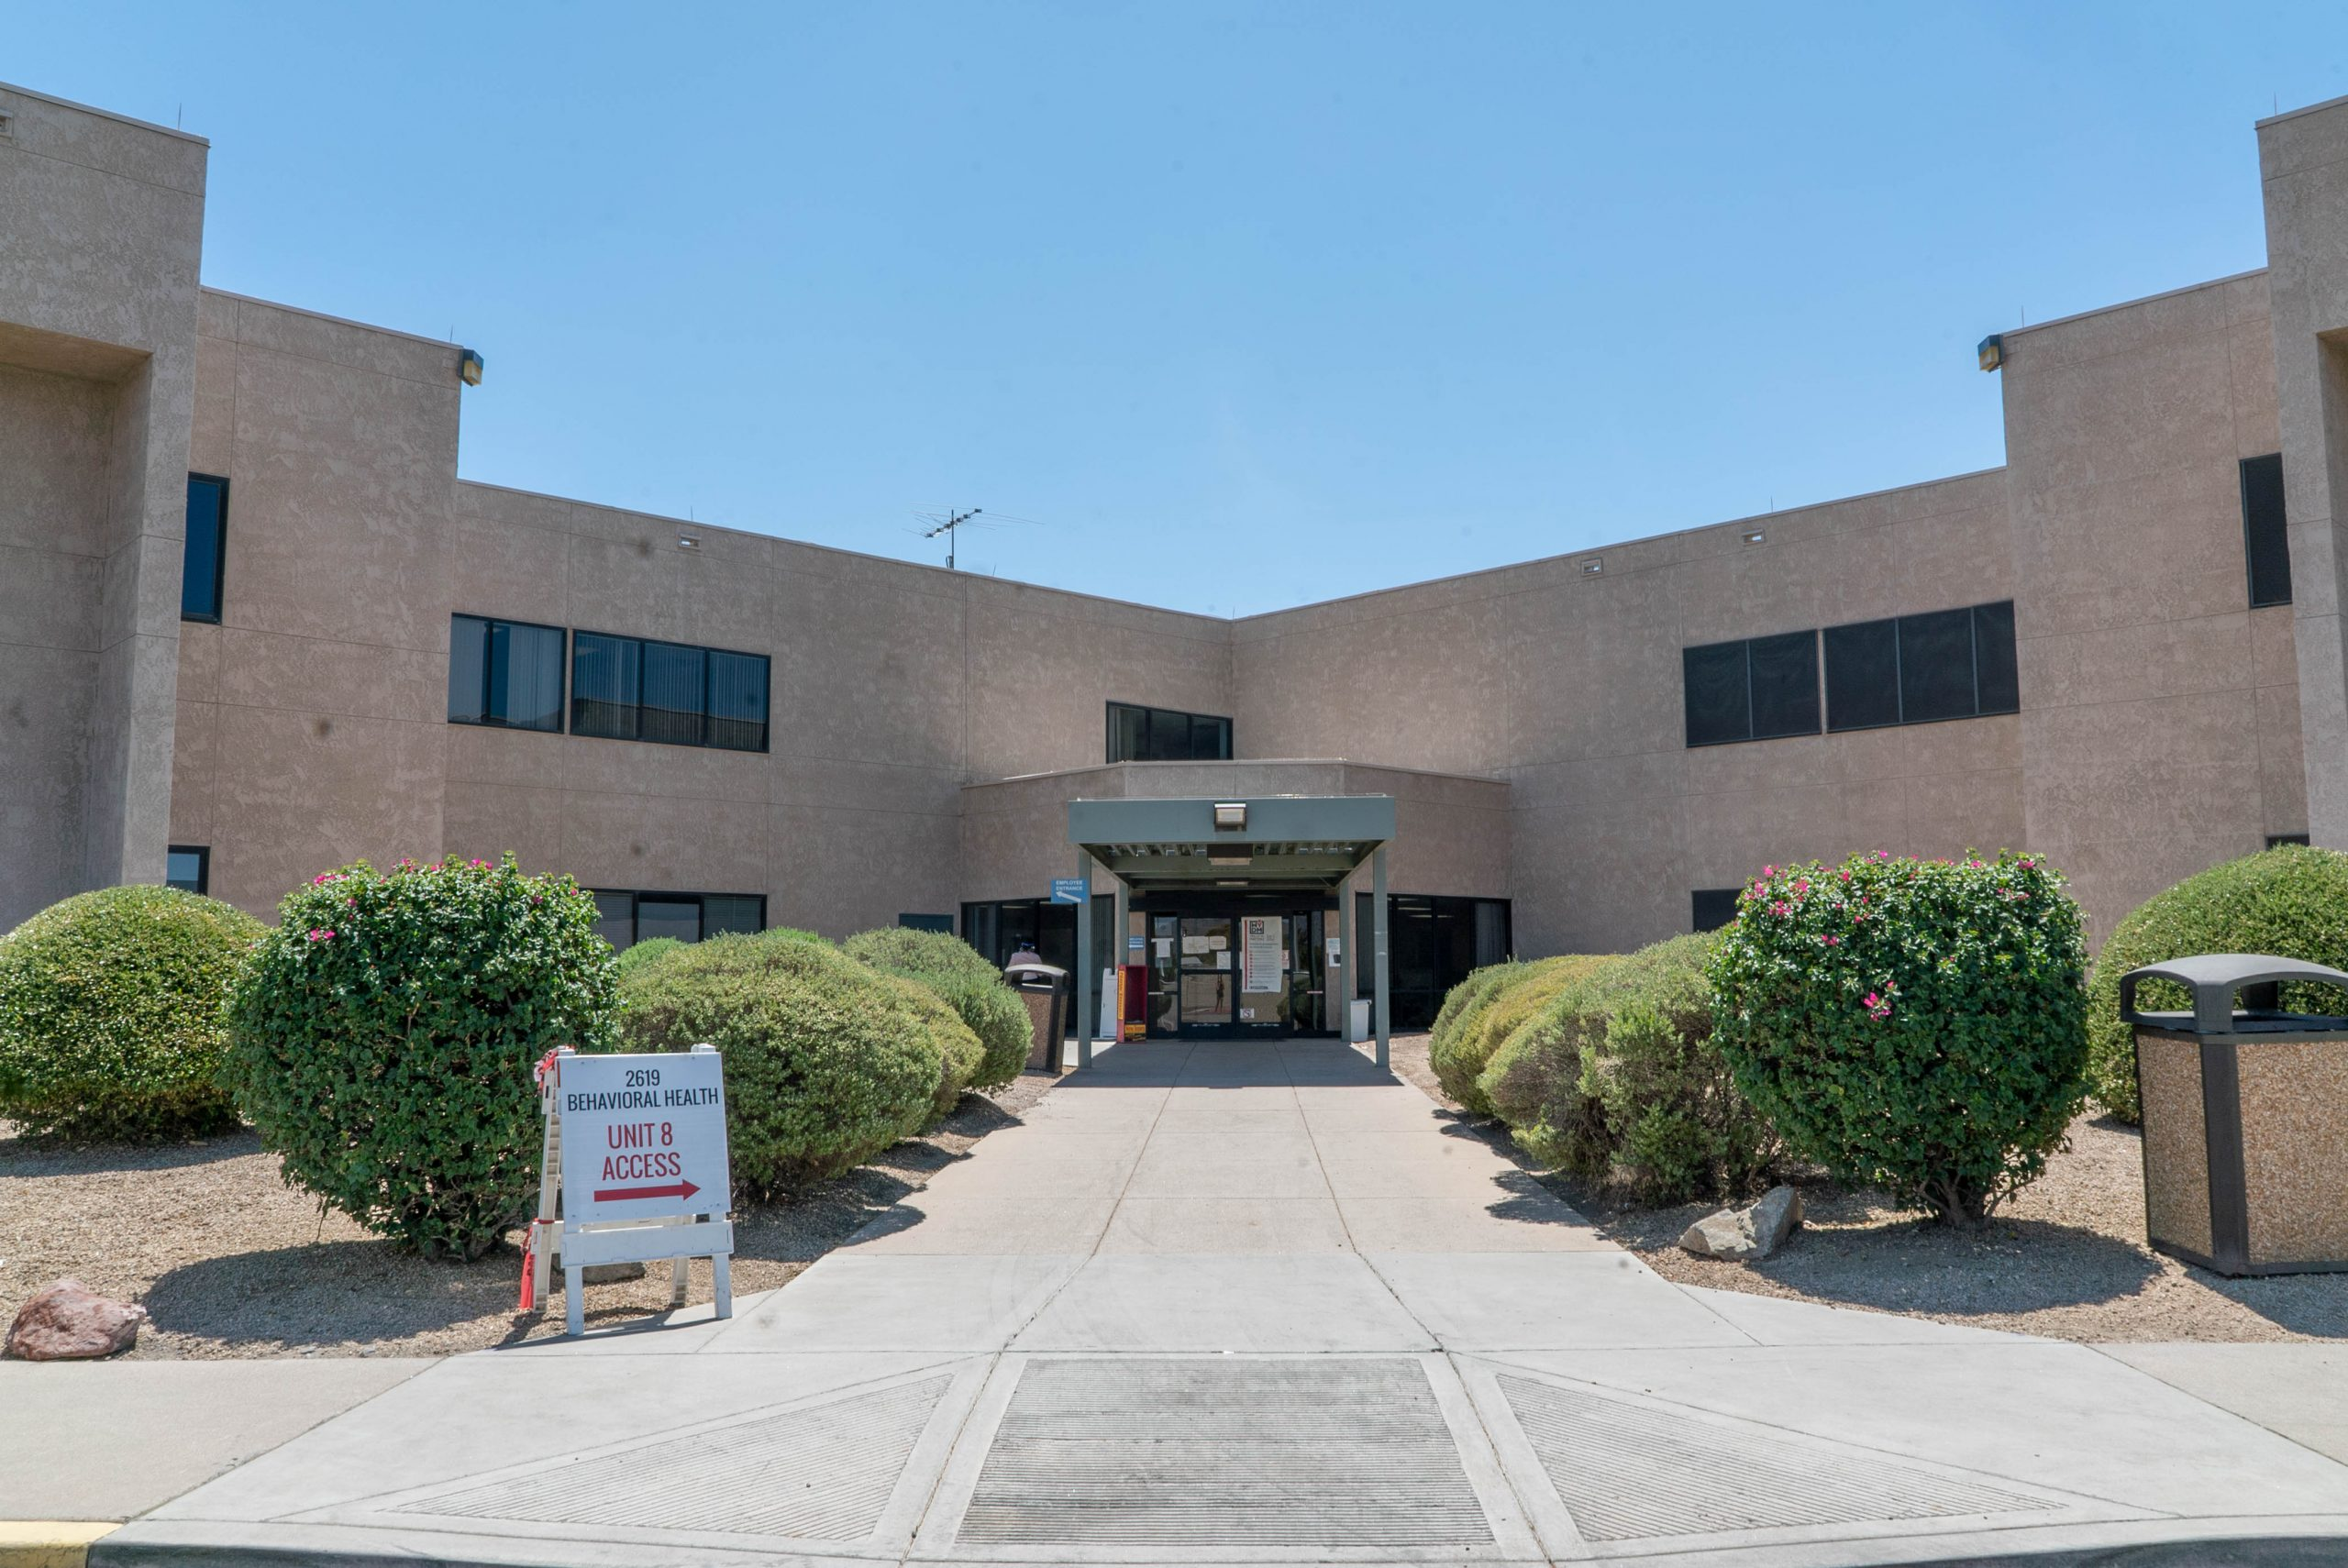 Valleywise Health Center front entrance